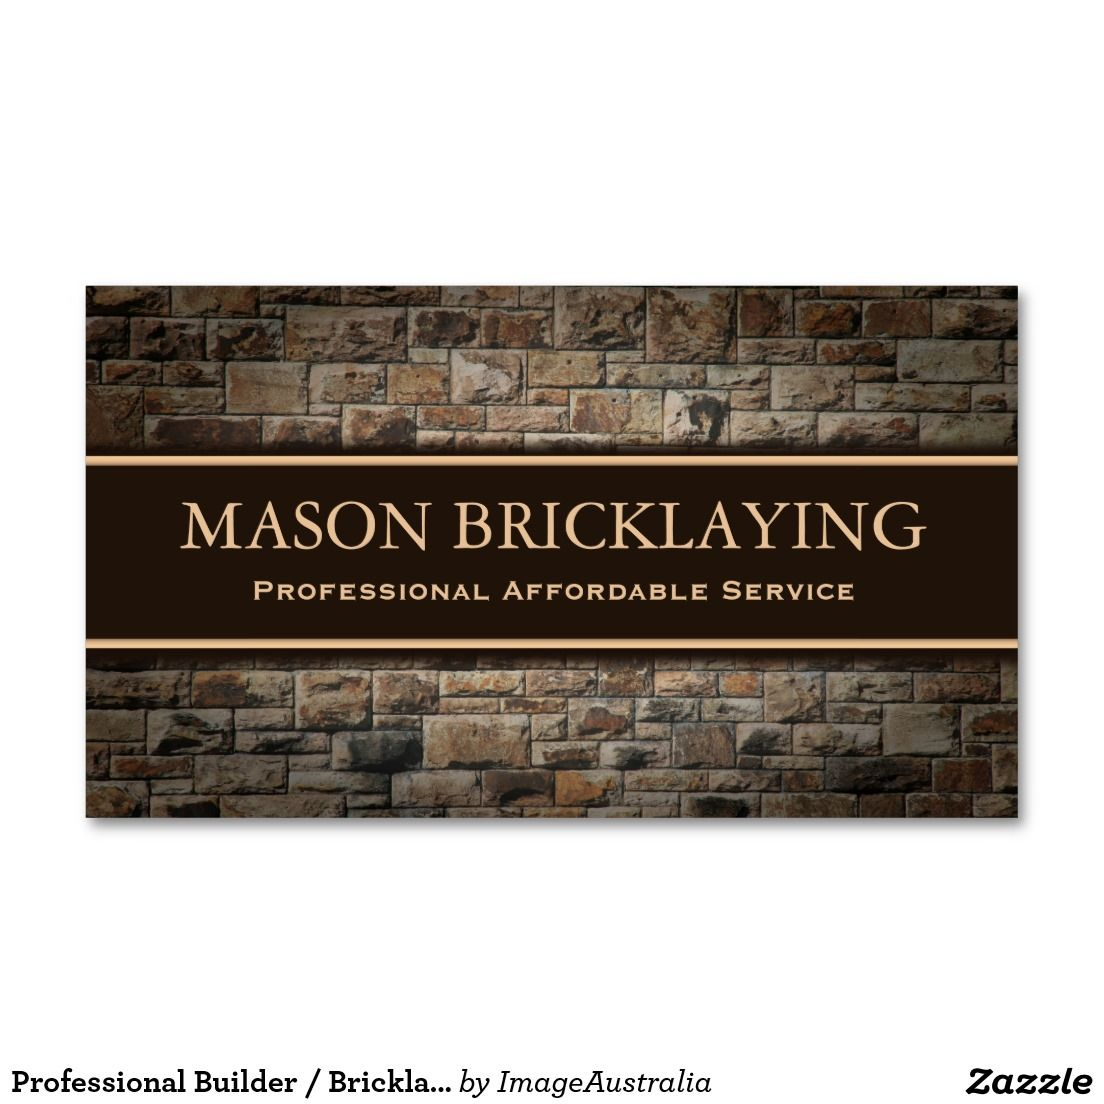 Professional Builder / Bricklaying Business Card | Pinterest ...